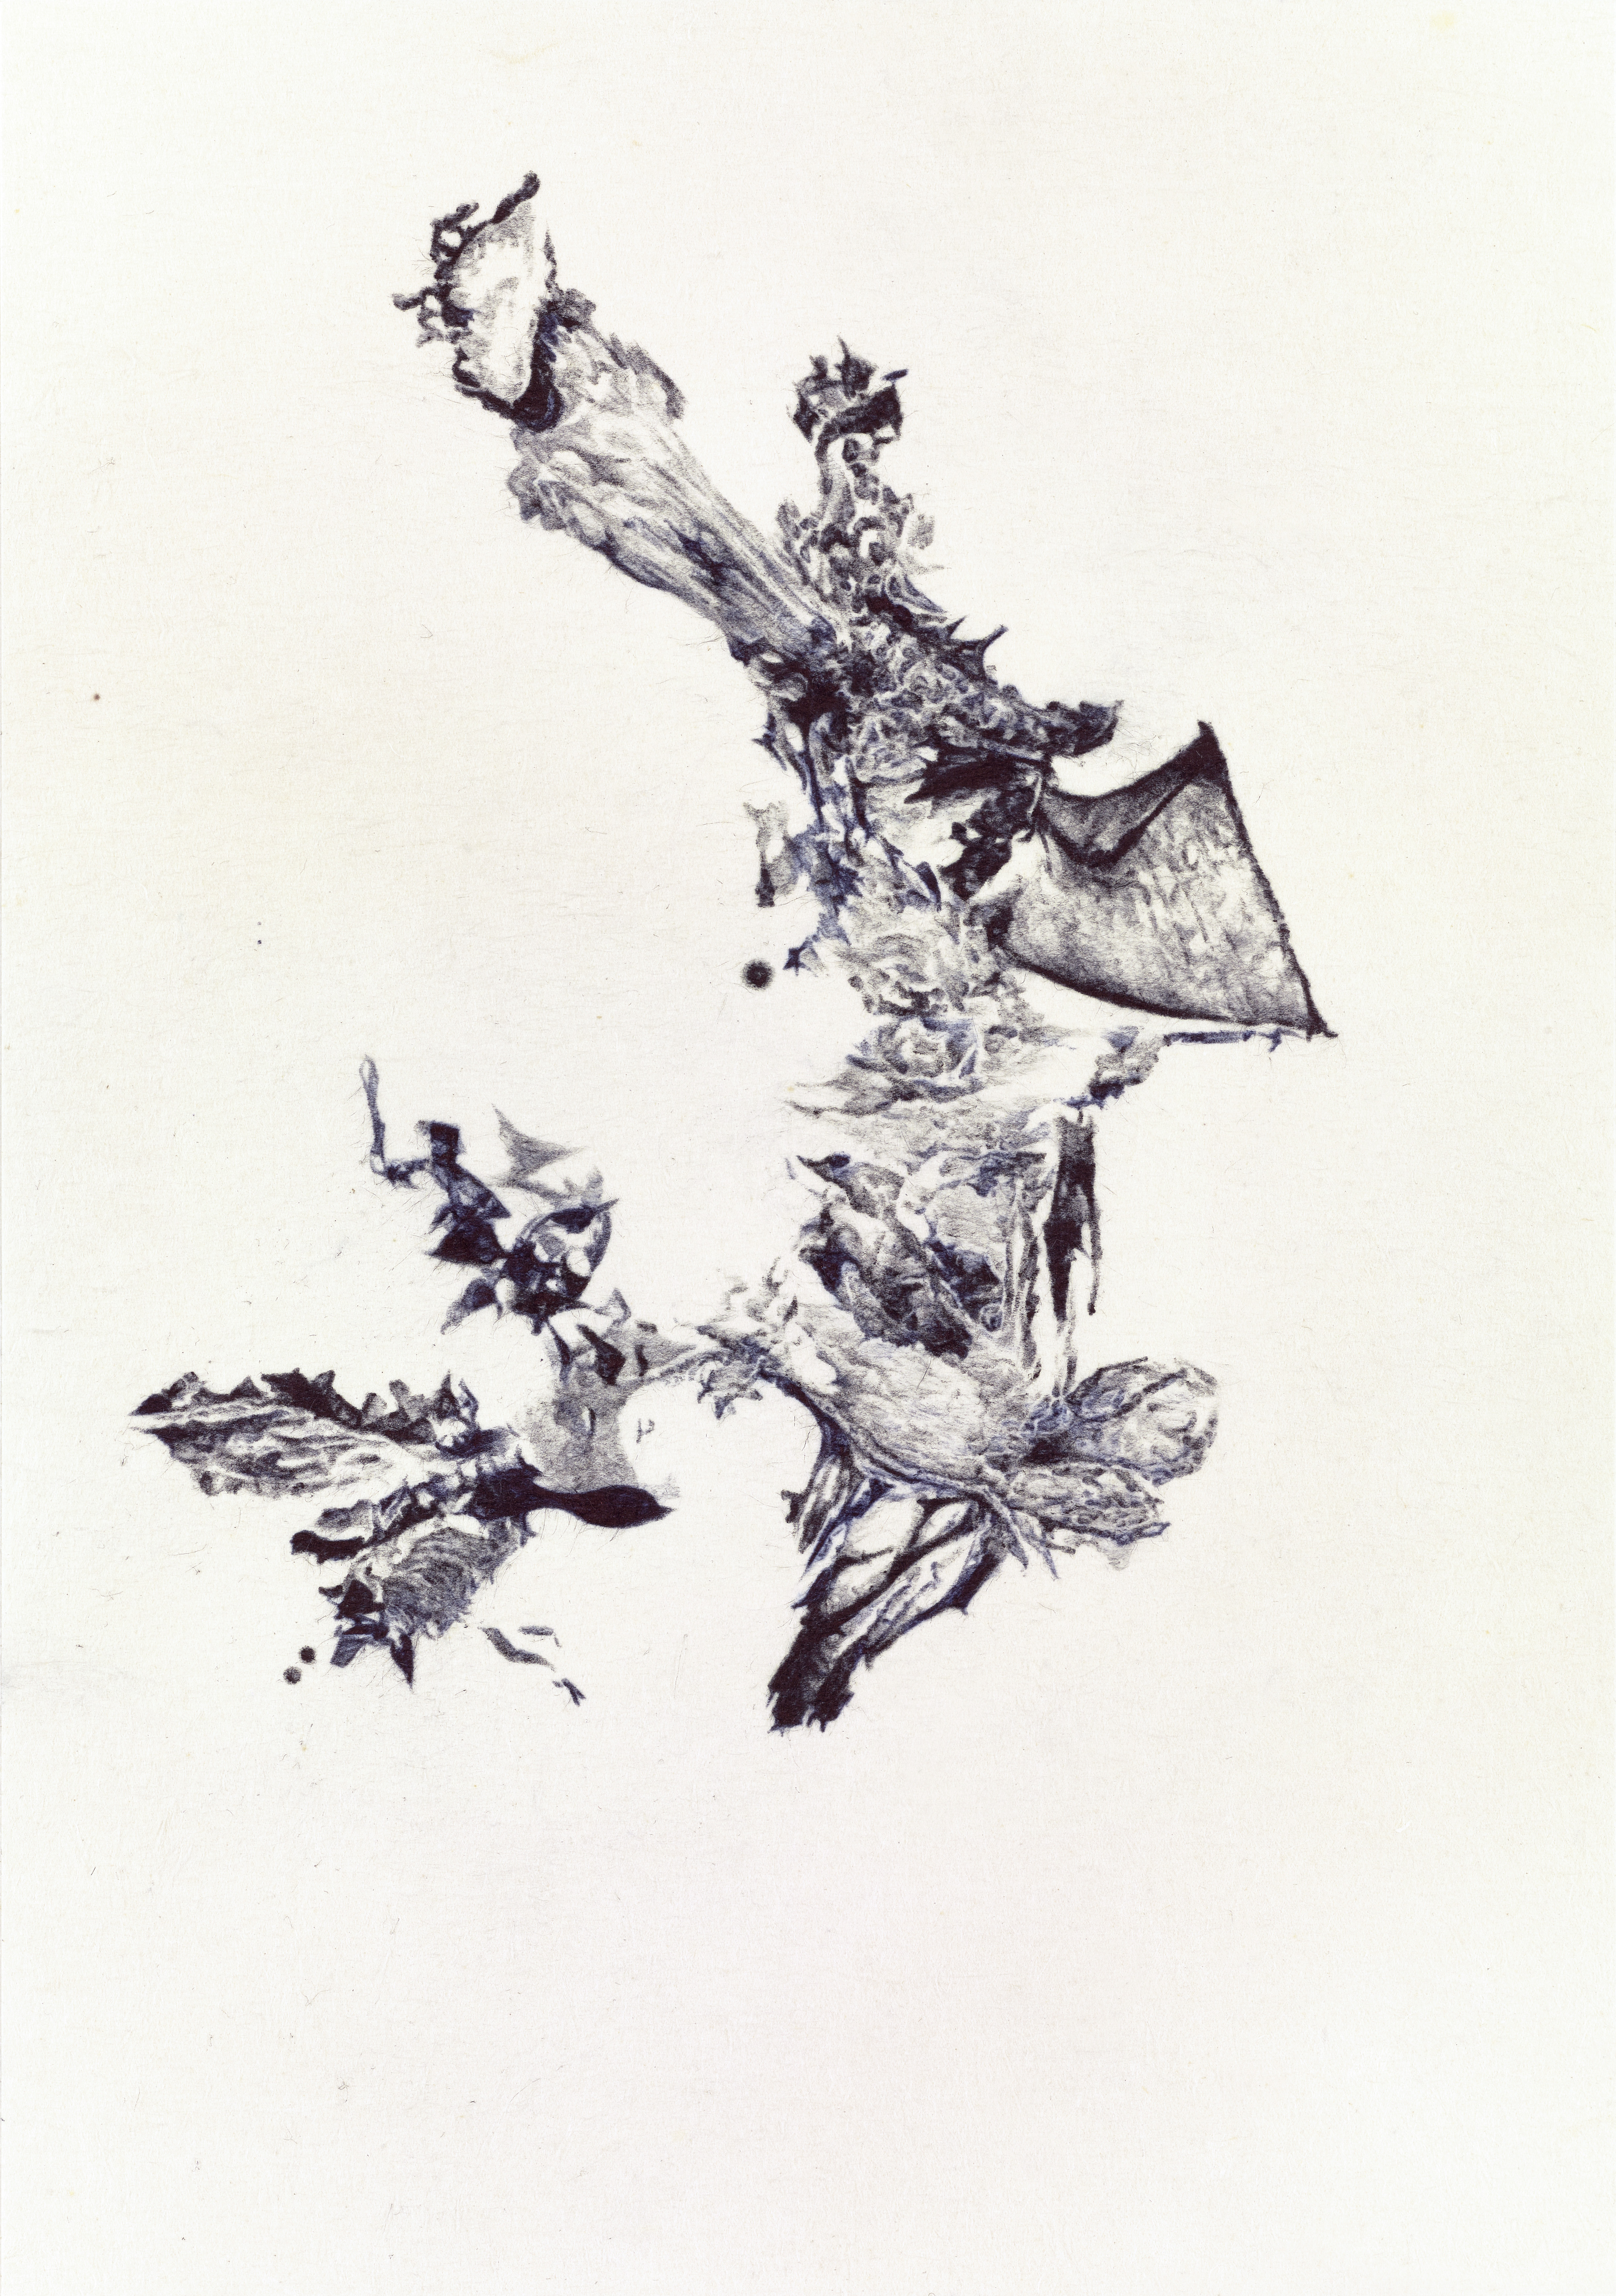 123a-a-moment-of-truth-57-ballpoint-pen-on-paper-29-7cm-height-x-21cm-width-2019